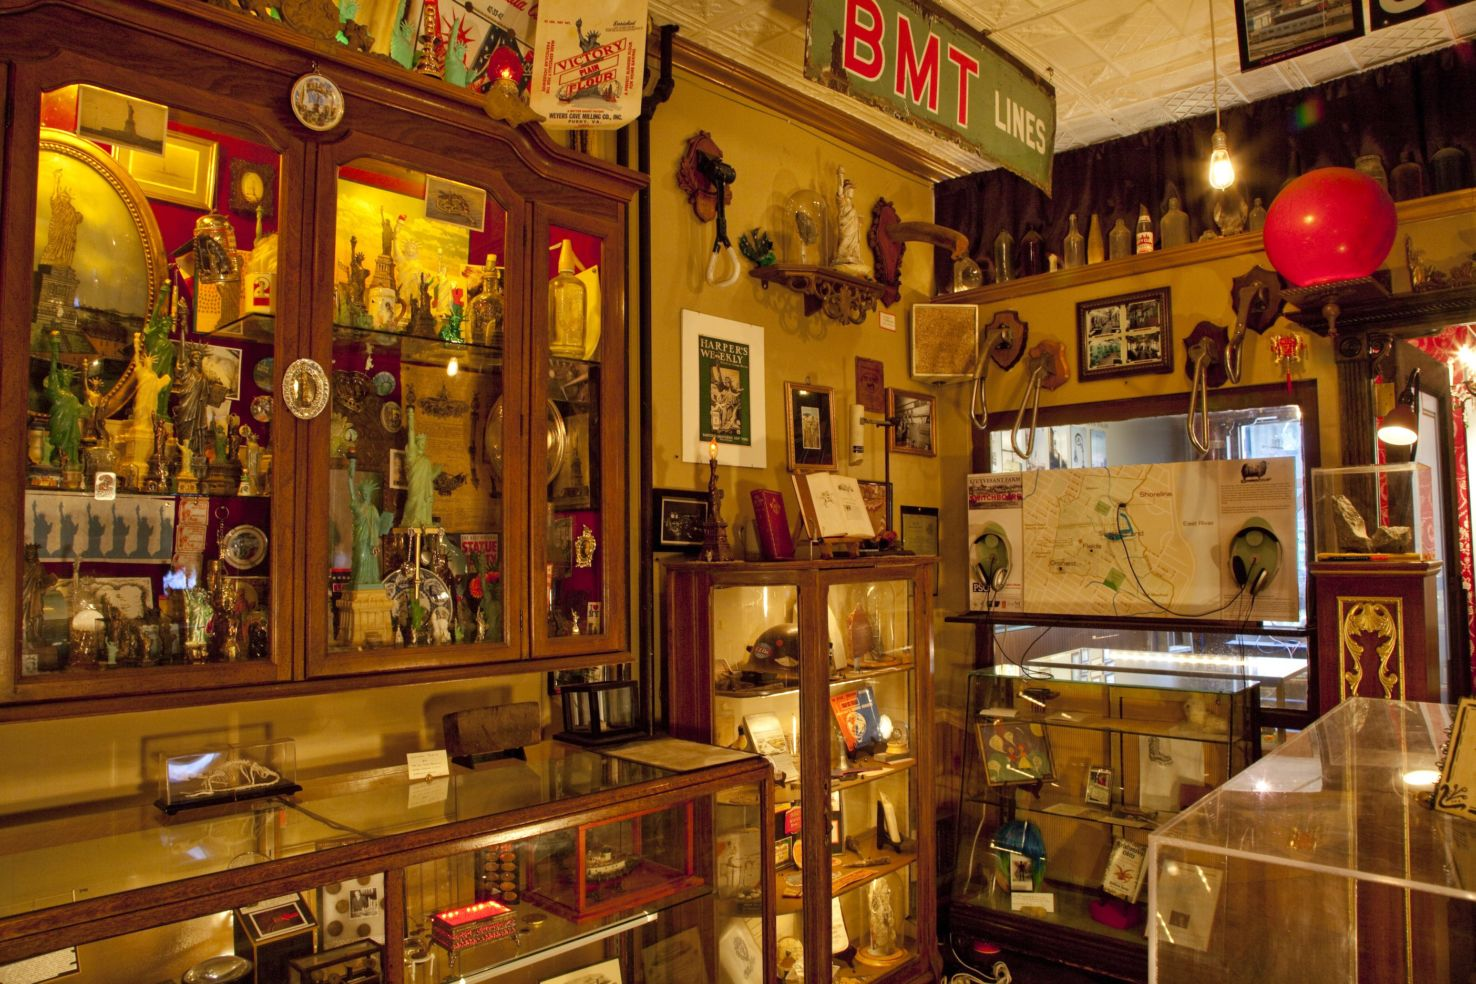 Budget Travel Weirdest Museums In America - Strangest museums in usa